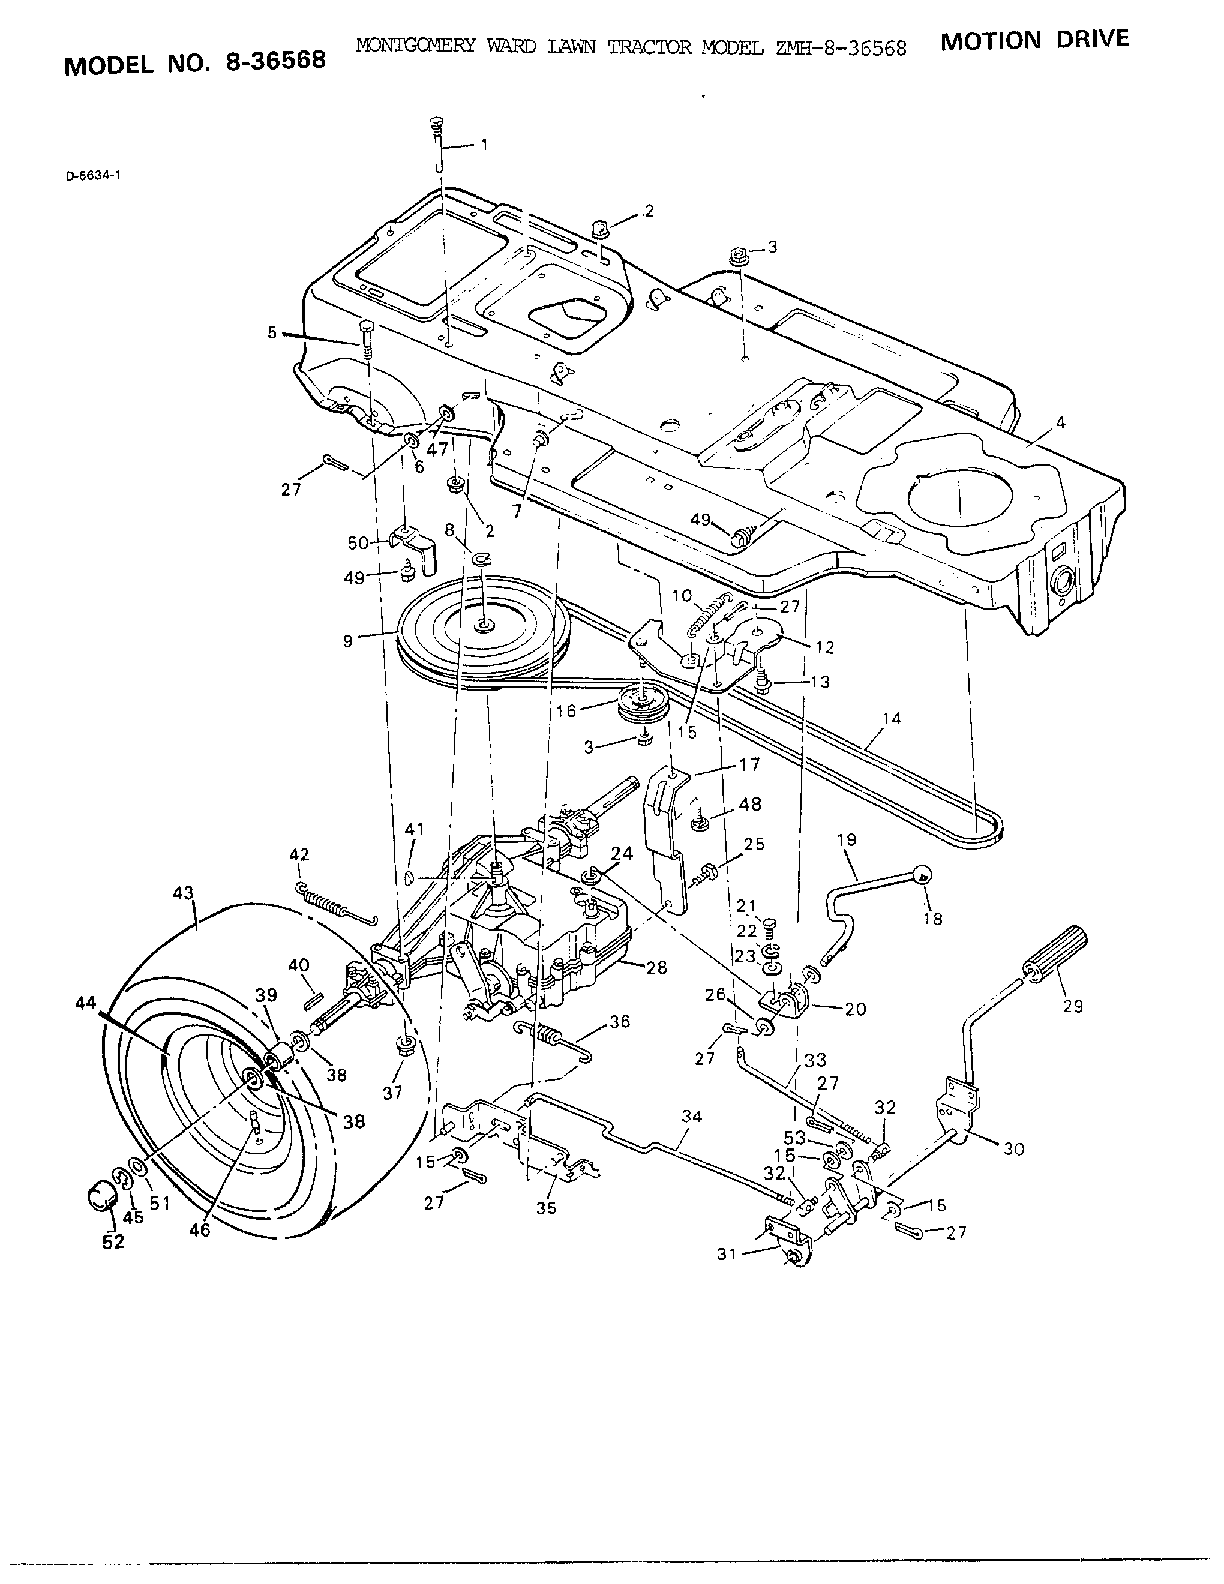 hight resolution of murray 8 36568 motion drive diagram